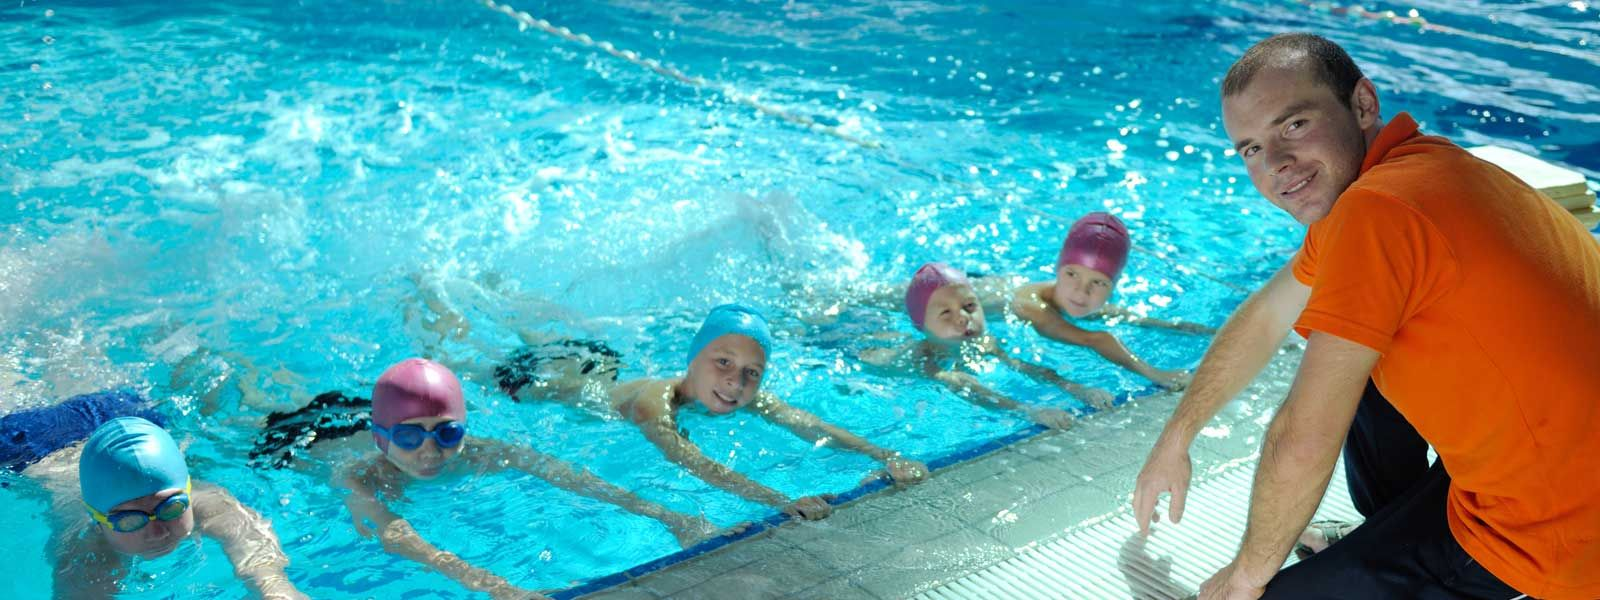 Are You Seeking About Swimming Training For Our Child Then Potomac Swimming School Is Providing Children Swimming Pool Swimming Classes Swimming Pool Pictures